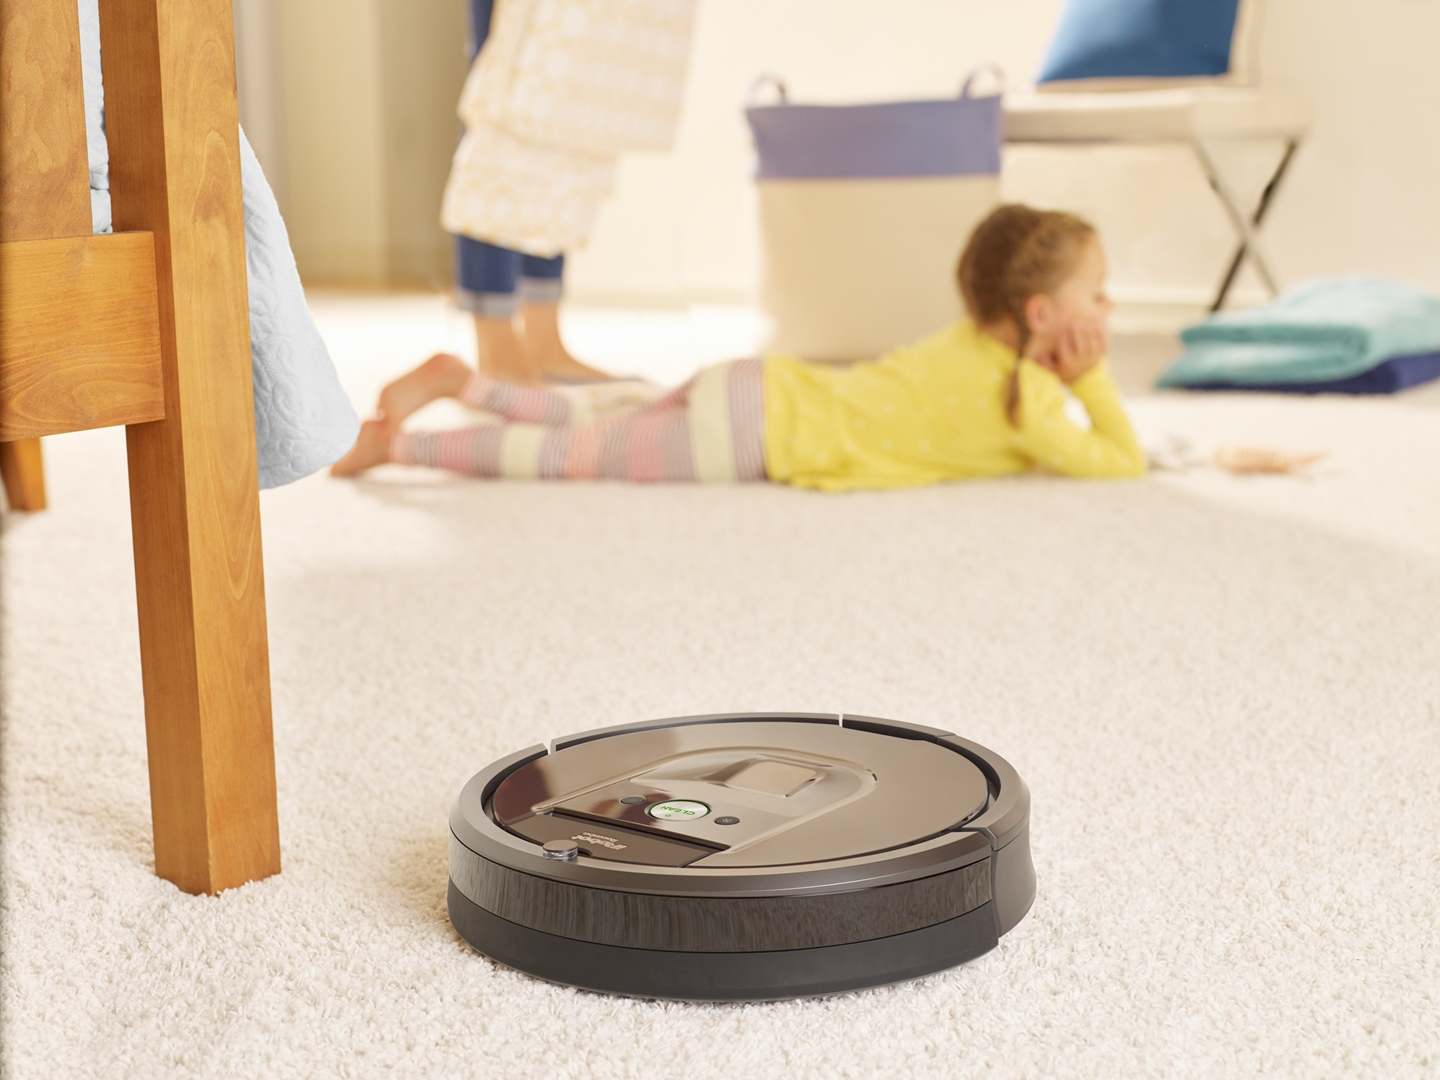 25_iRobot_Roomba980 (Copy)